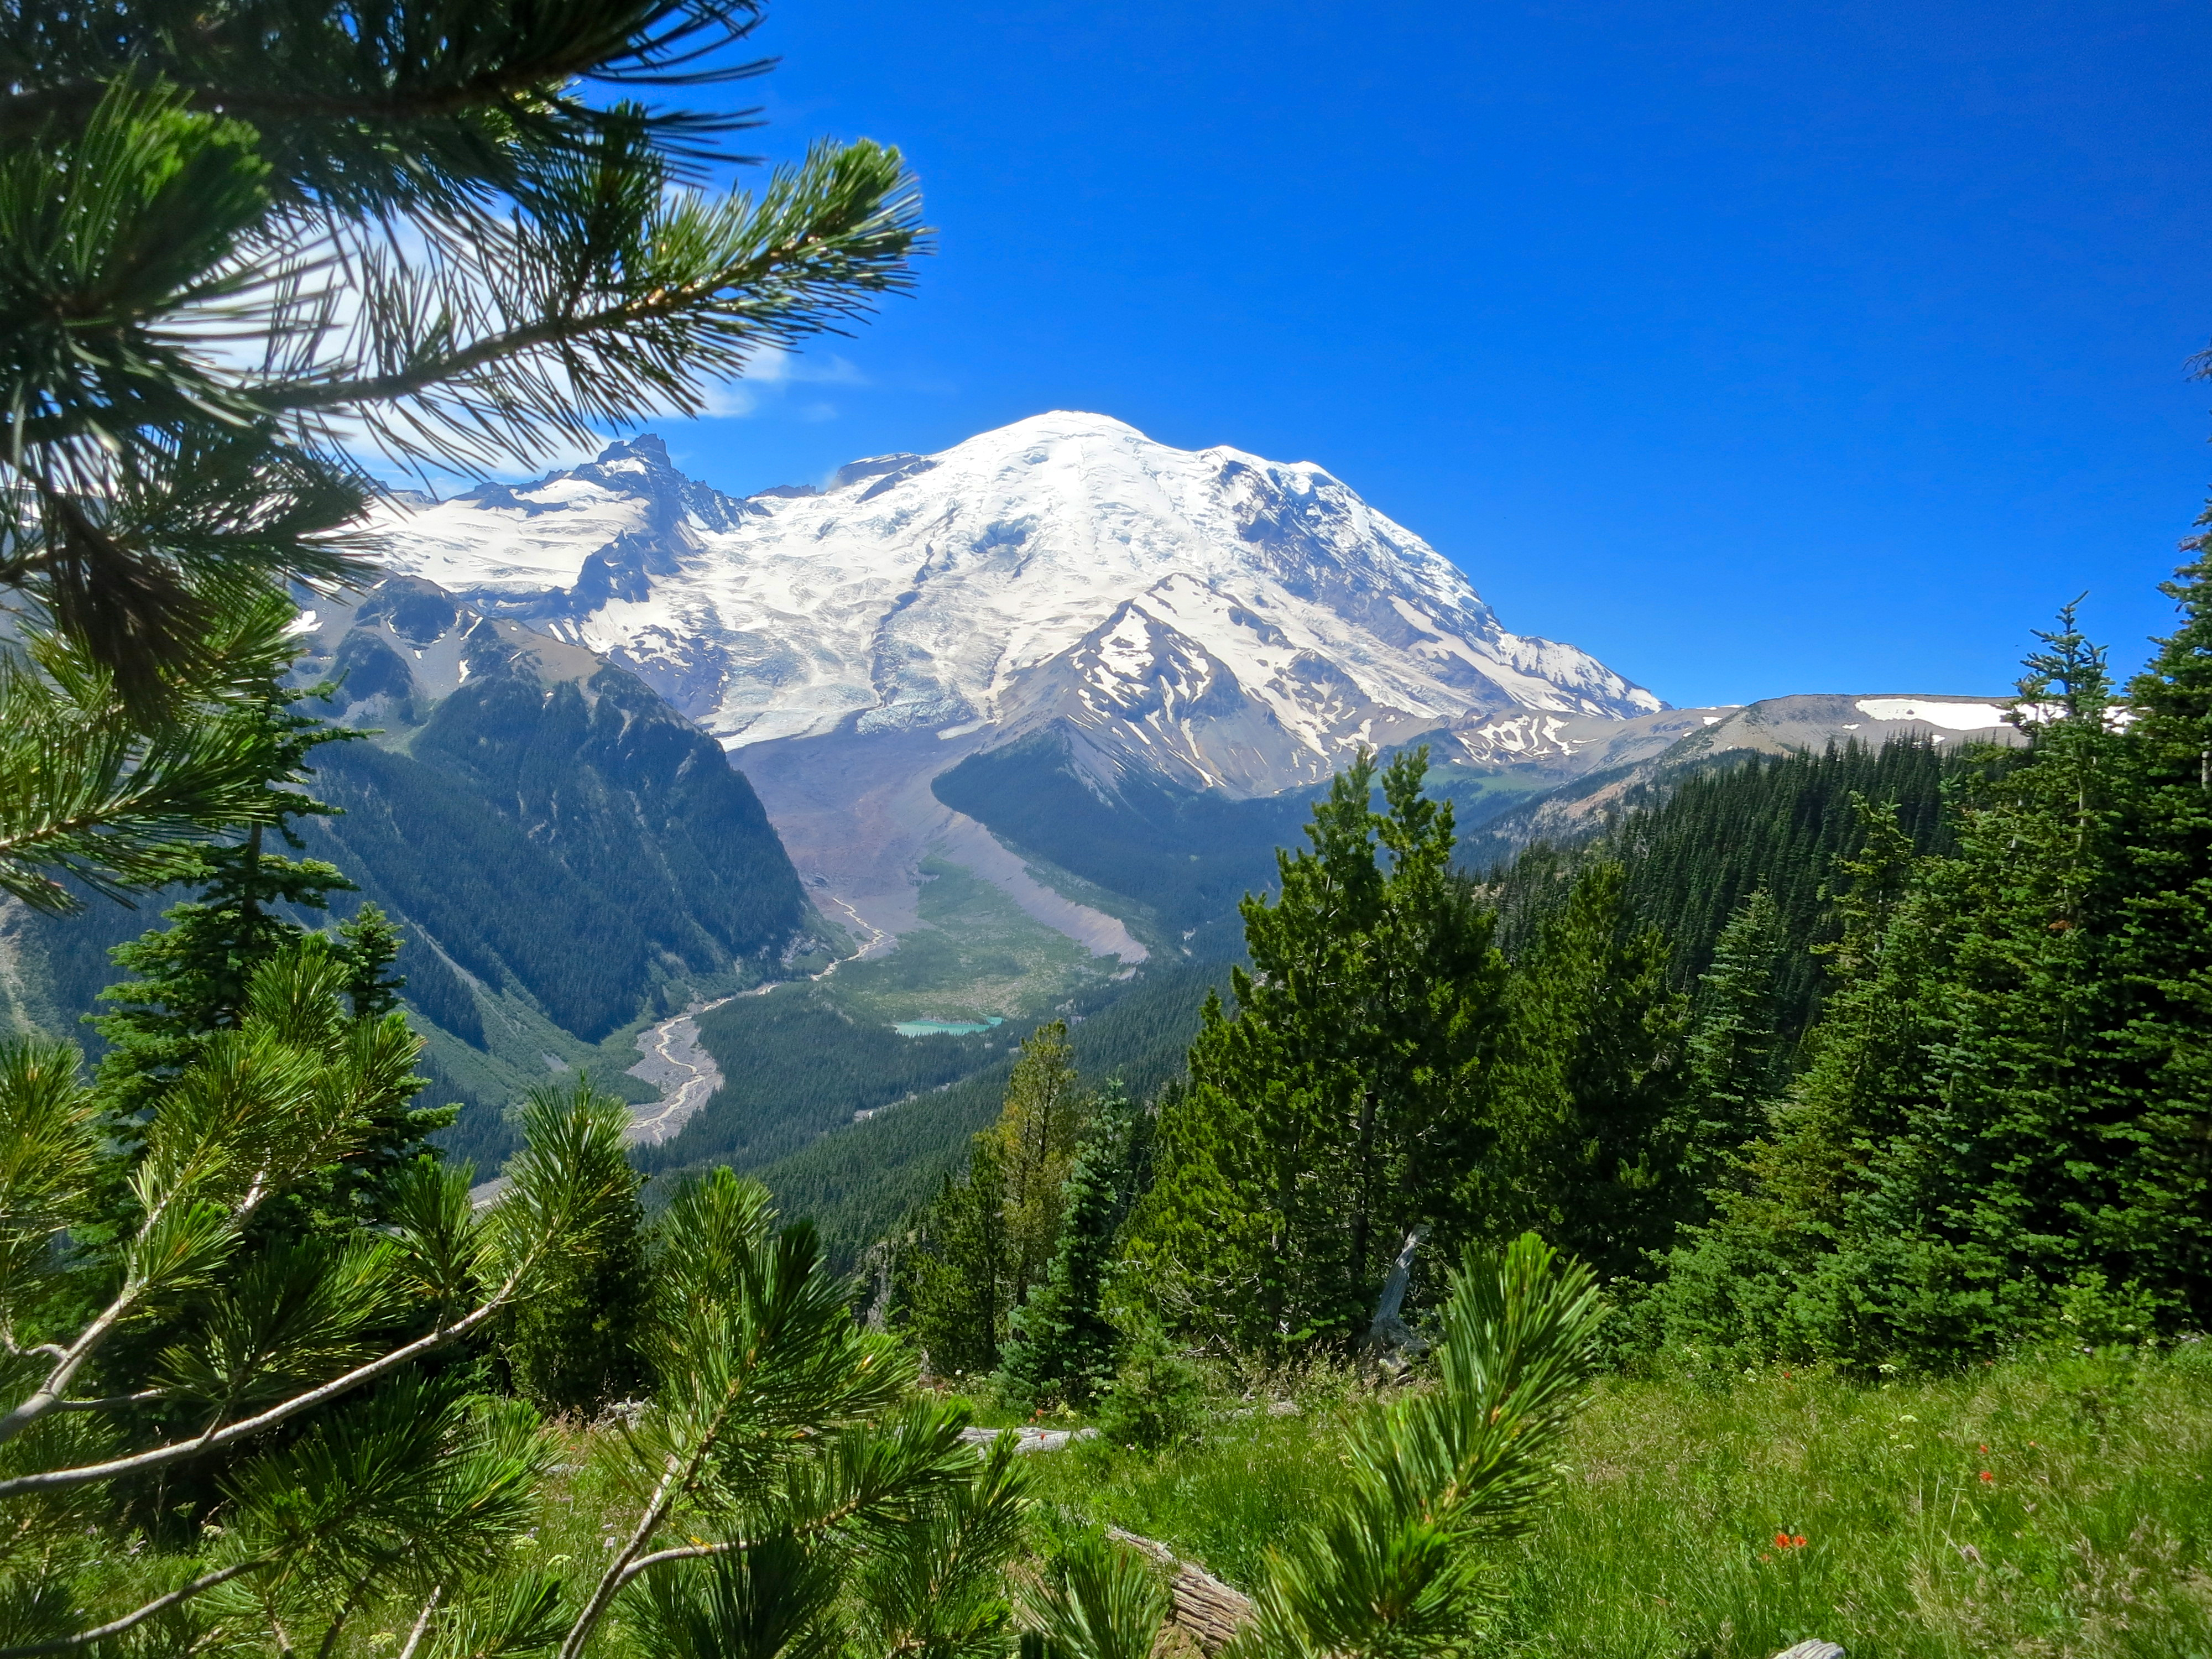 Mt. Rainier National Park | Wandering through Time and Place